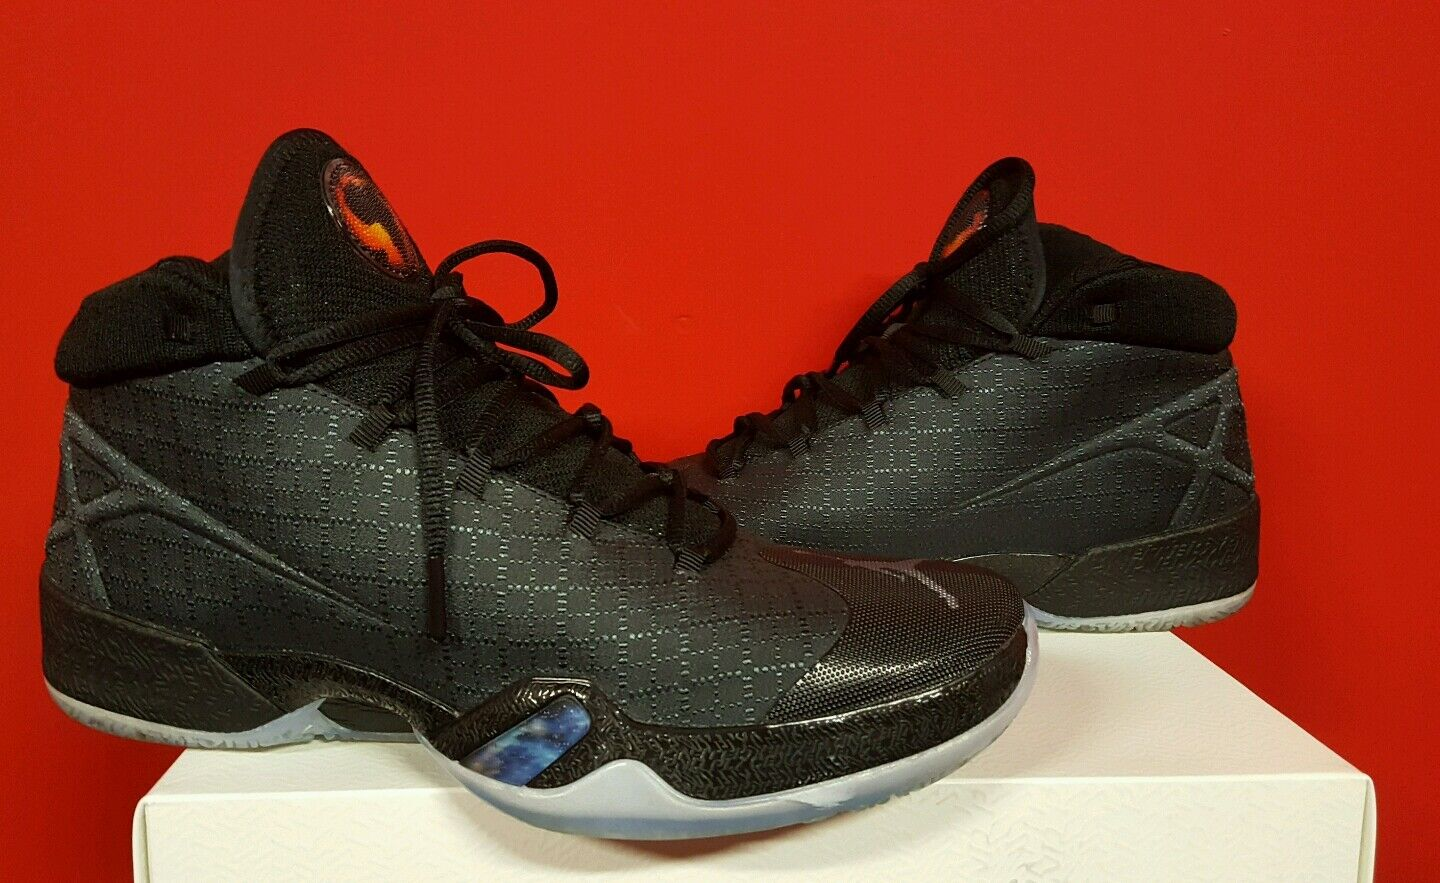 Air jordan XXX ANTHRACITE BLACK EDITION SIZE 10.5 USED ***PRICE REDUCED**